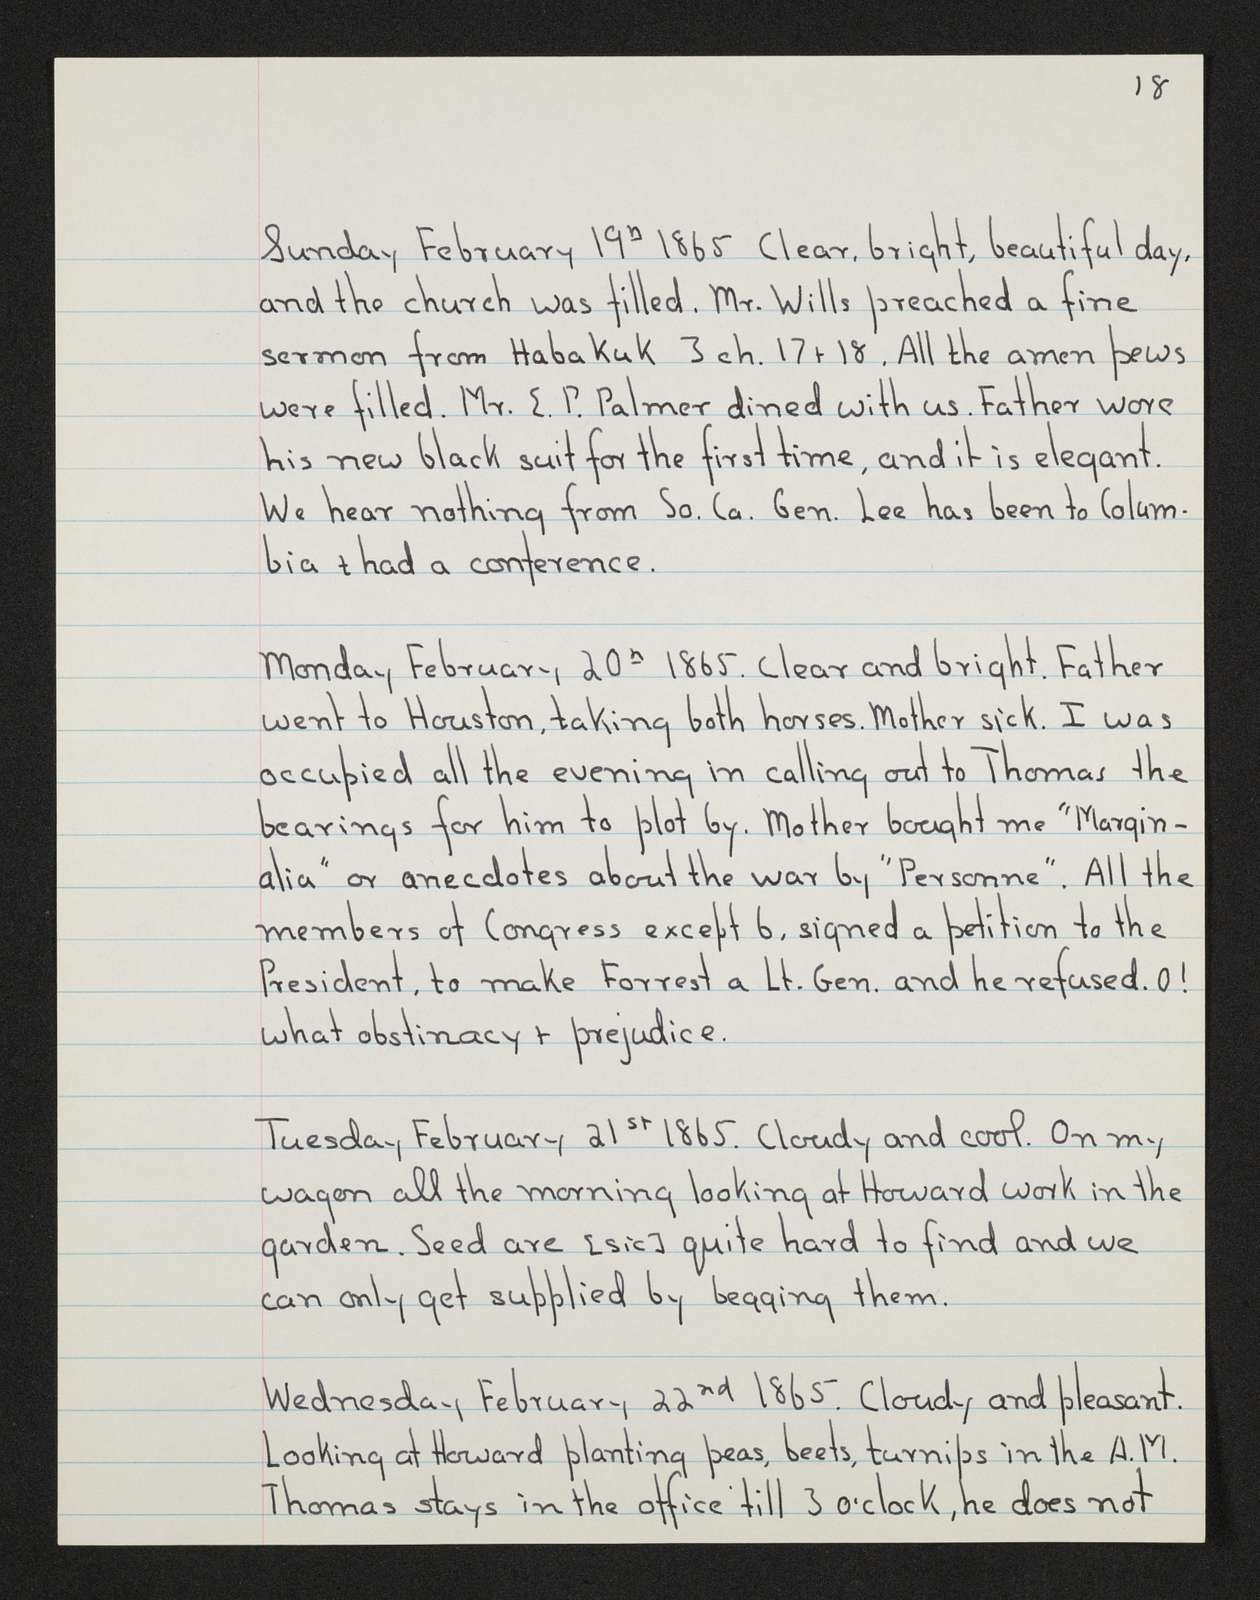 Lewis H. Machen Family Papers: Diaries and Diary Transcriptions, 1860-1865; Diaries; Gresham, LeRoy Wiley; Transcriptions; 1865